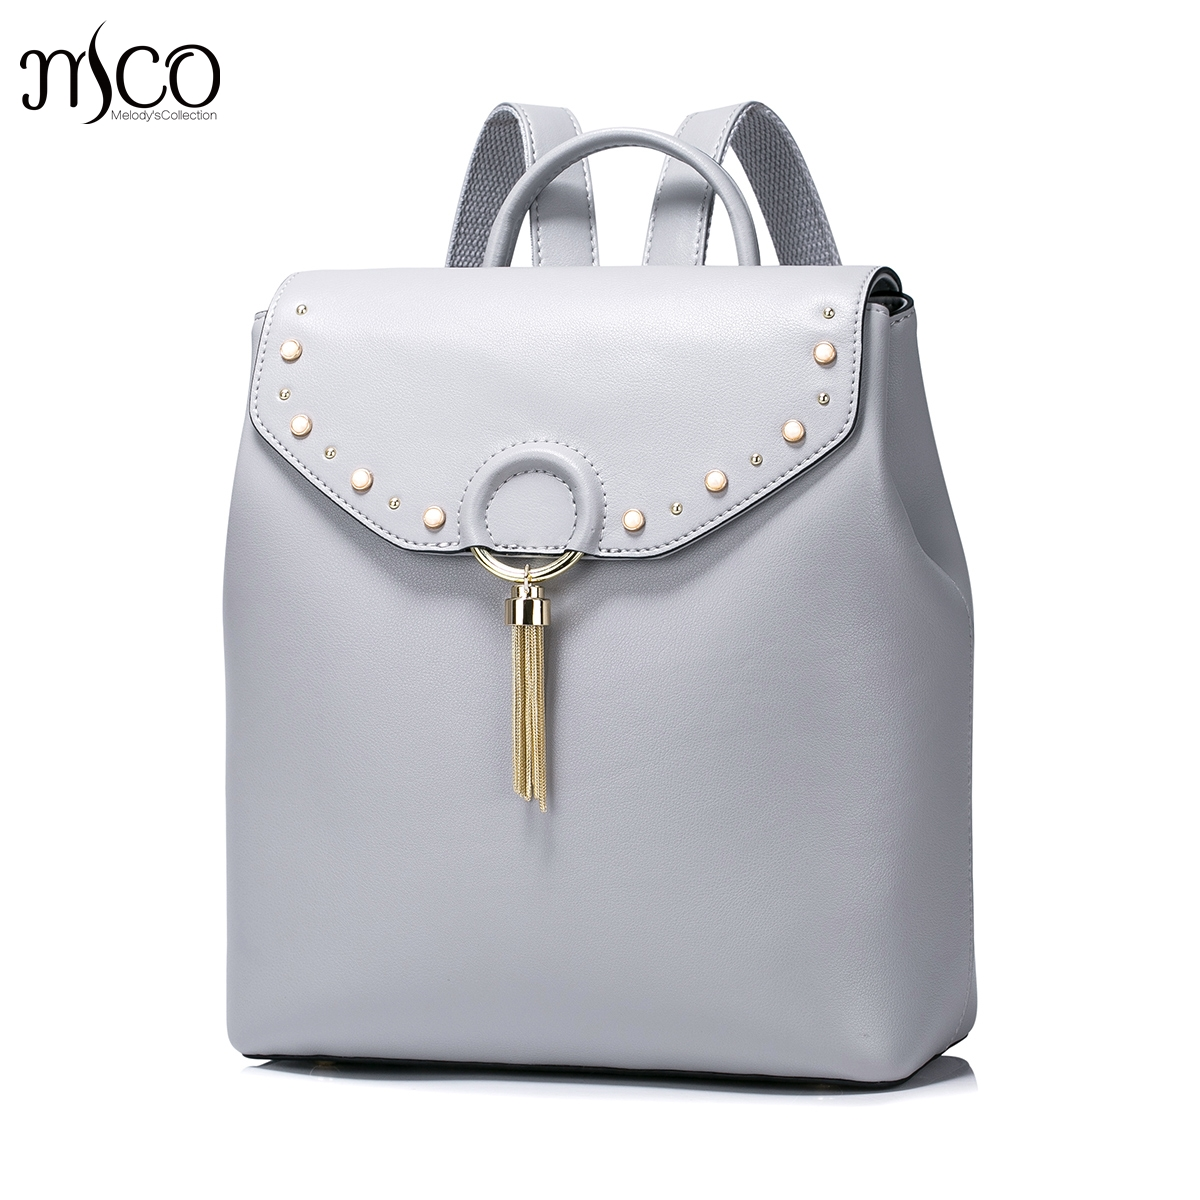 High Quality Fashion Genuine Leather Soft Backpack For Women Tassels Pearls Ring Diamond Shoulder Bags School bag Daypack Travel sweet college wind mini school bag high quality pu leather preppy style fashion girl candy color small casual backpack xa384b